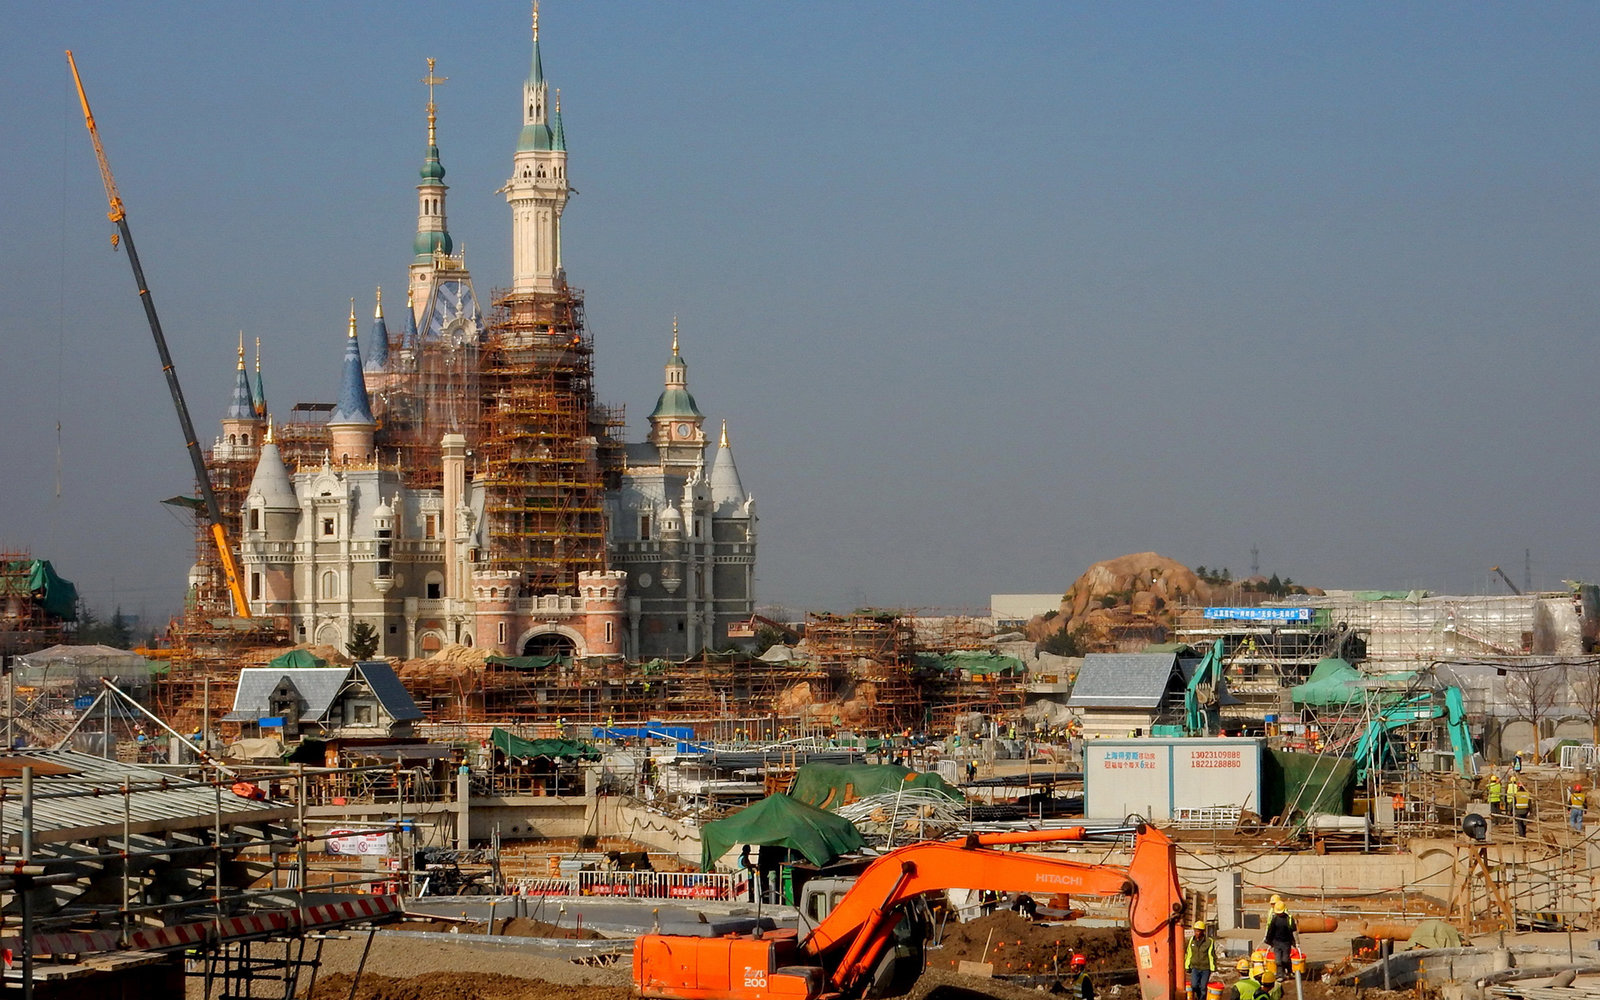 SHANGHAI, CHINA - DECEMBER 26: (CHINA OUT) Disneyland is under construction on December 26, 2015 in Shanghai, China. Shanghai Disneyland would open on Children's Day of 2016. (Photo by Zhang Heping/ChinaFotoPress via Getty Images)